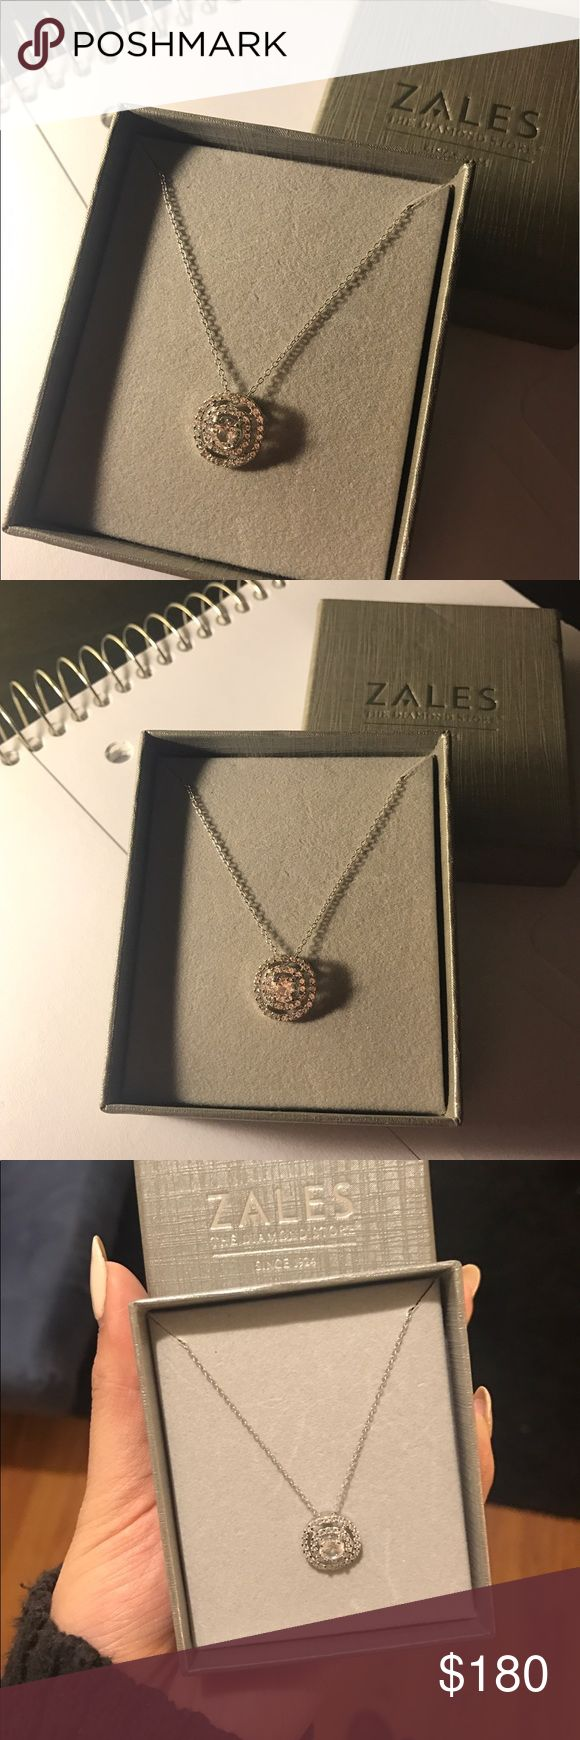 Diamond Necklace from Zales the Diamond Store This beautiful, new, and never worn necklace is from Zales. It's really sparkly but it has a simple touch. I still have the box it came with. Zales Jewelry Necklaces